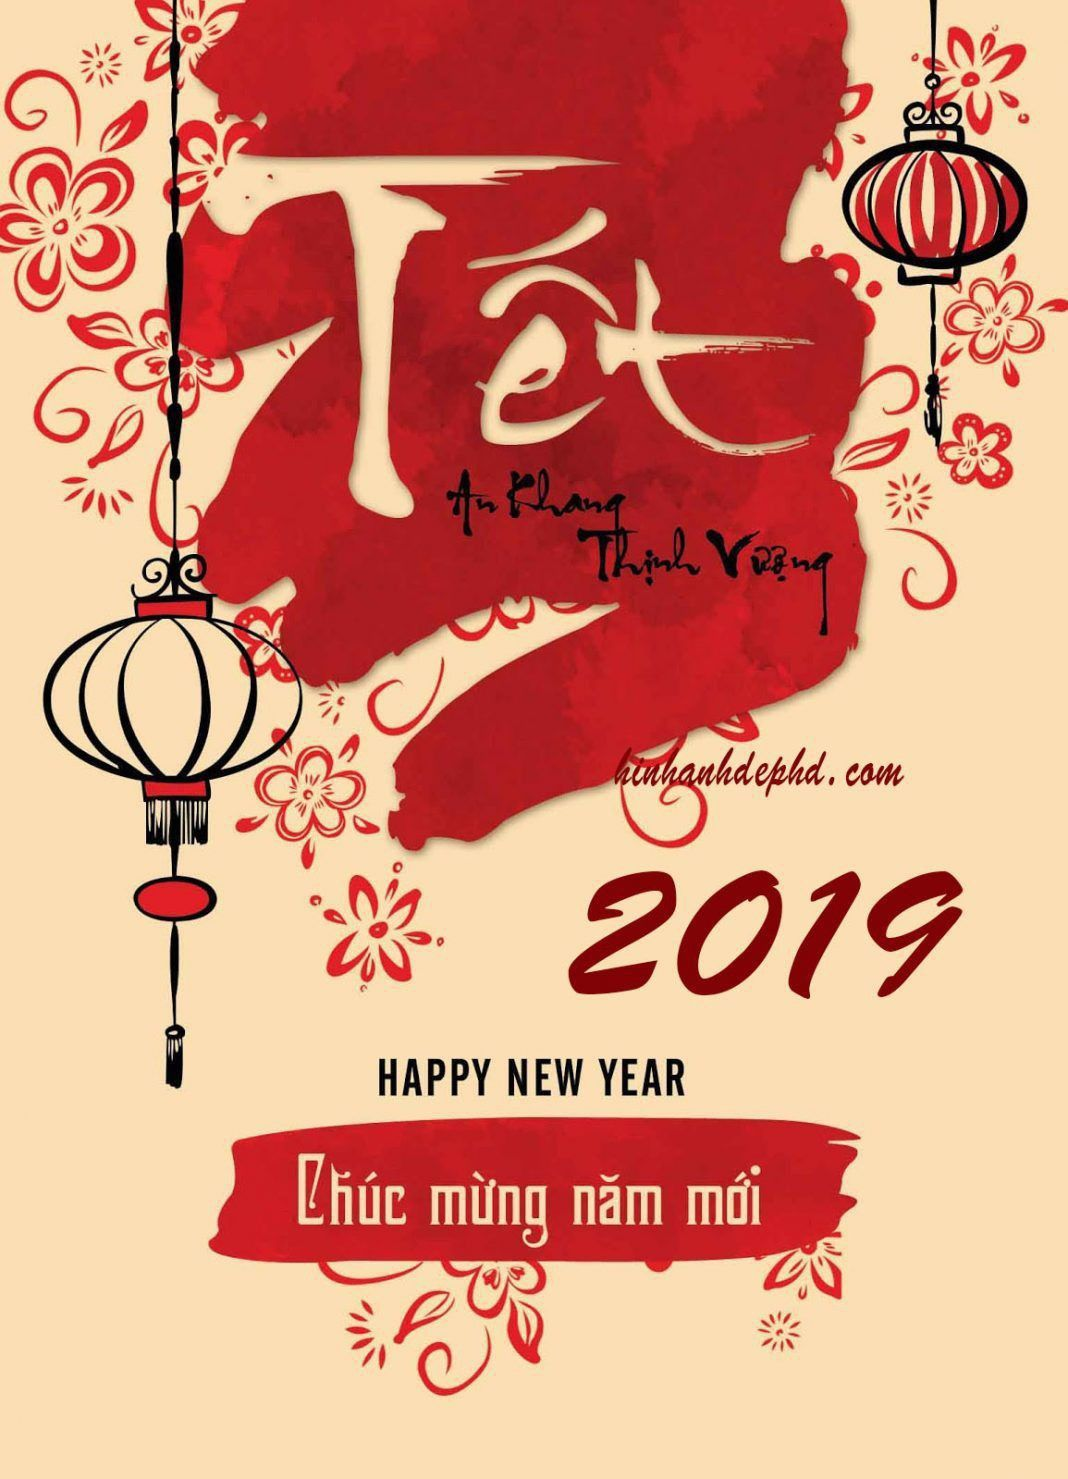 Lunar new year greetings image by BIG BOY TOY on Tokyo